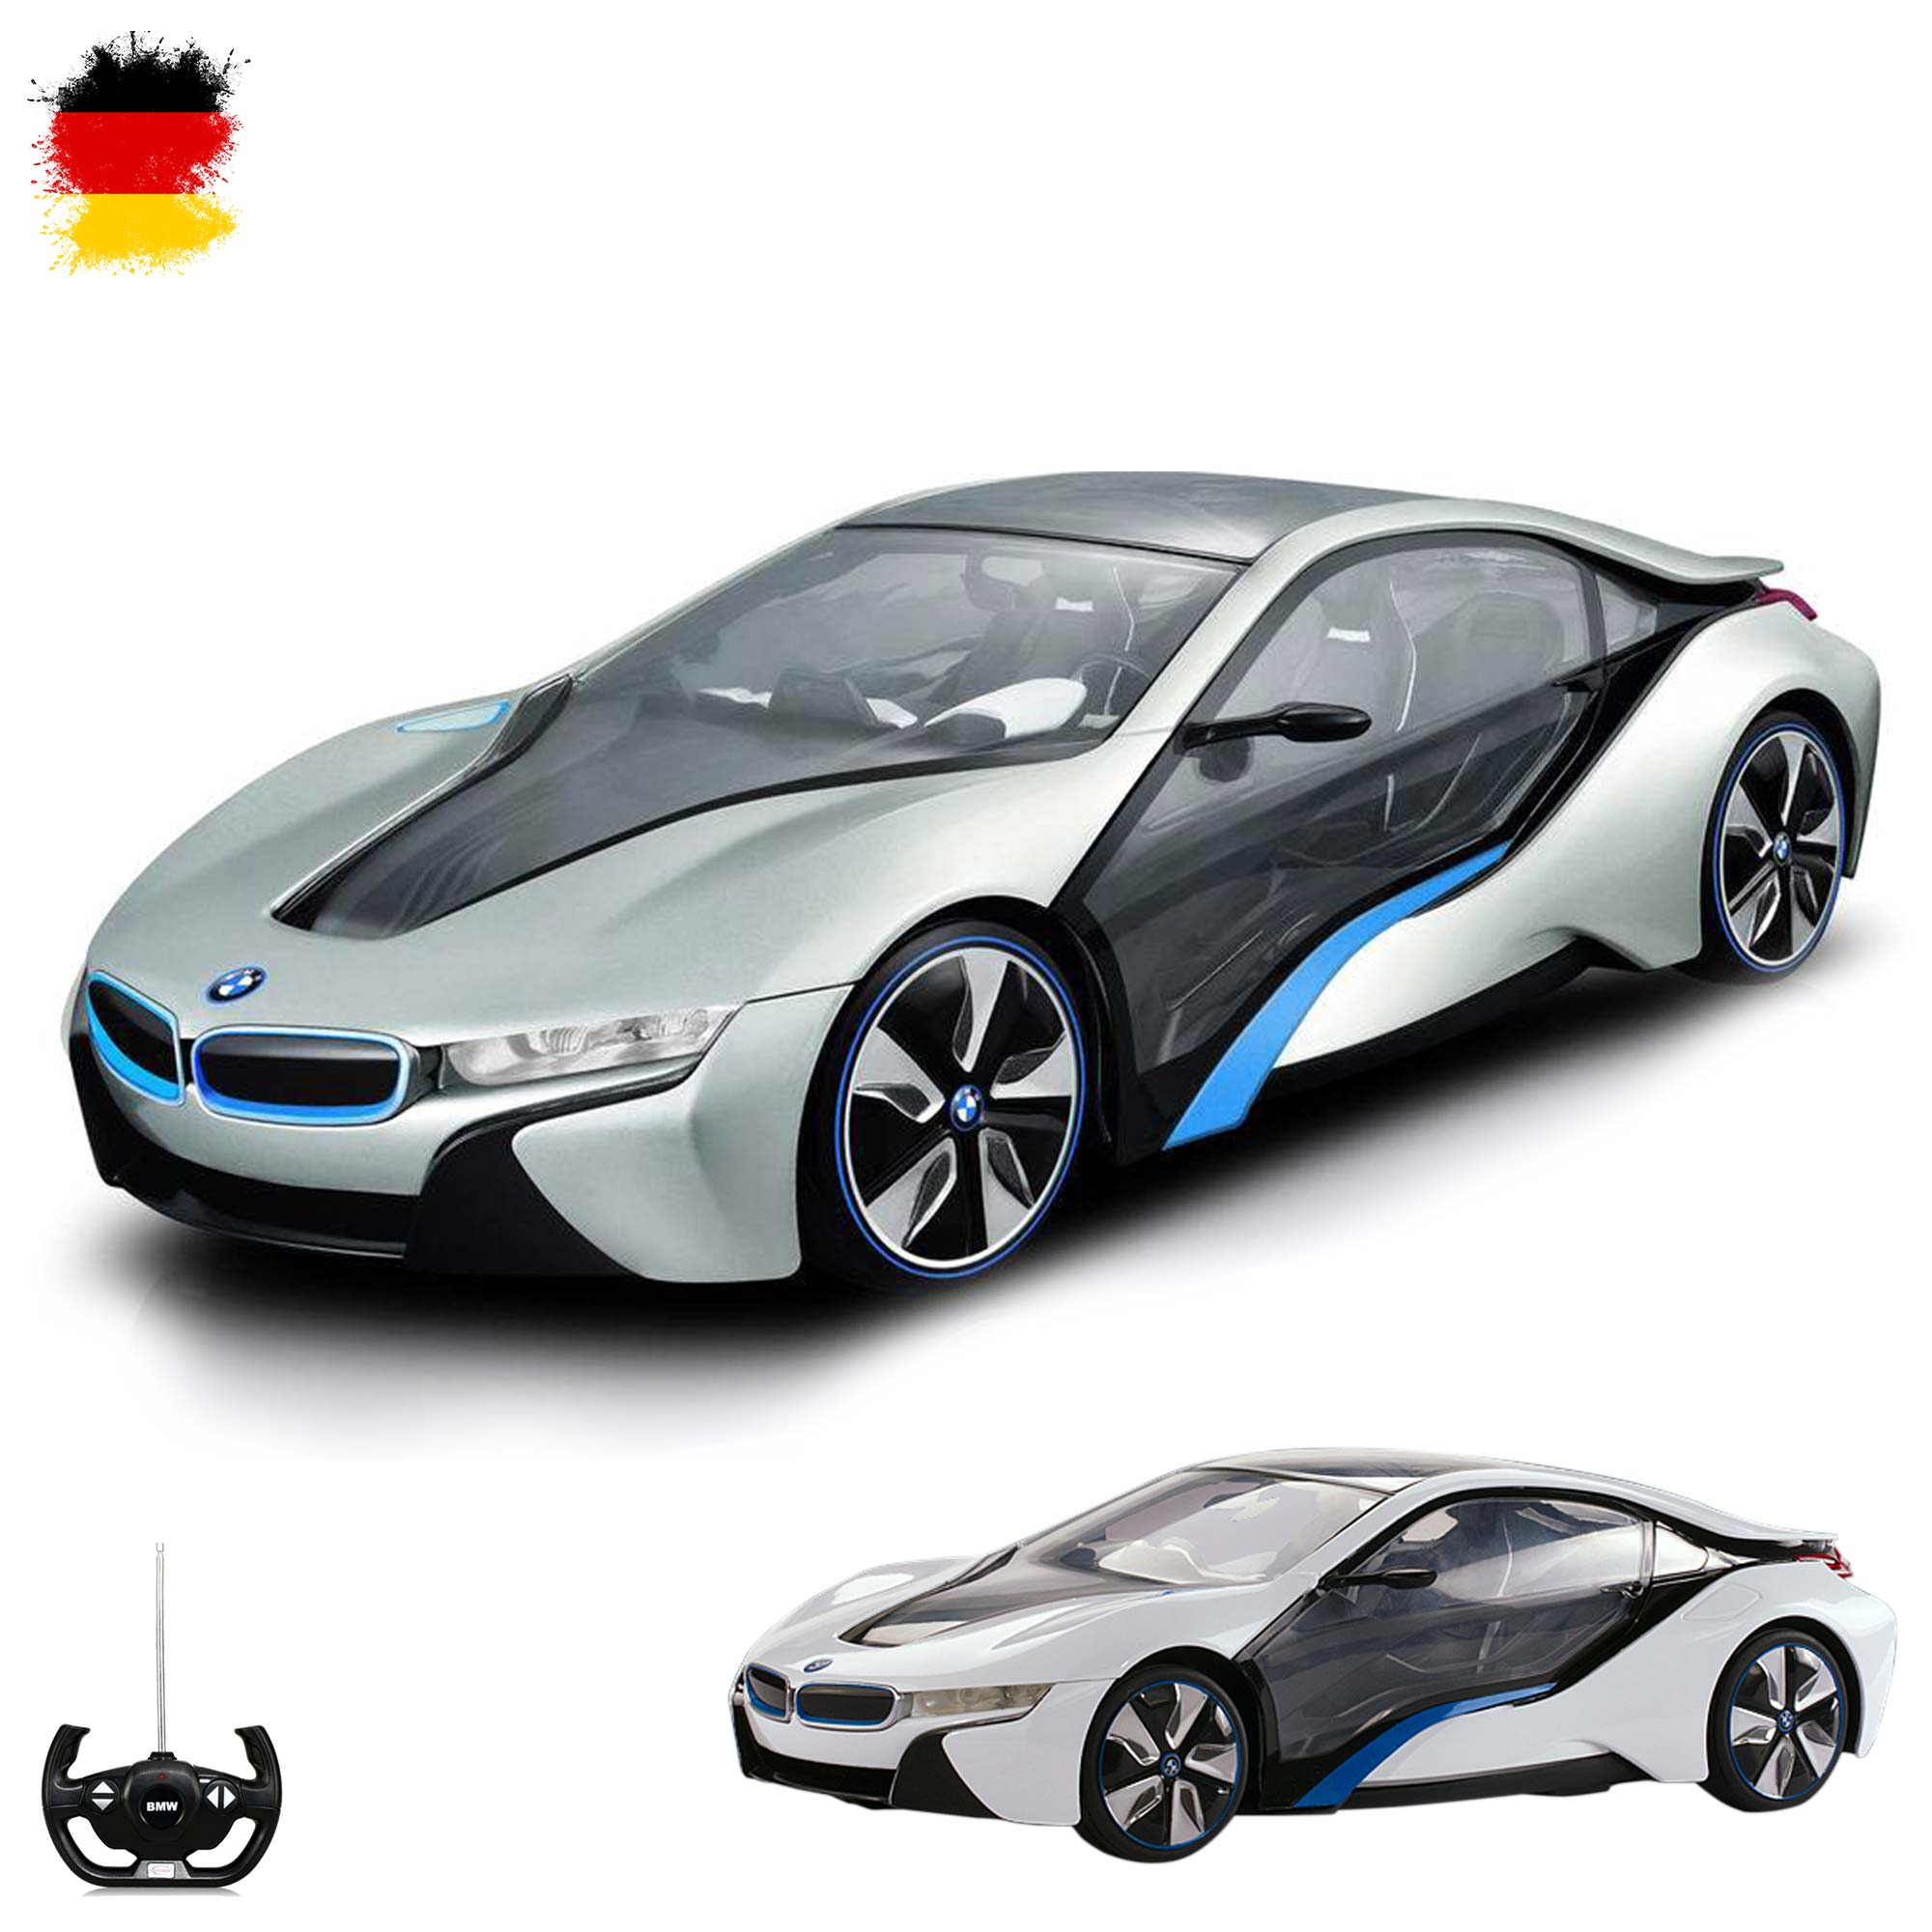 original bmw i8 vision concept car rc ferngesteuertes auto. Black Bedroom Furniture Sets. Home Design Ideas